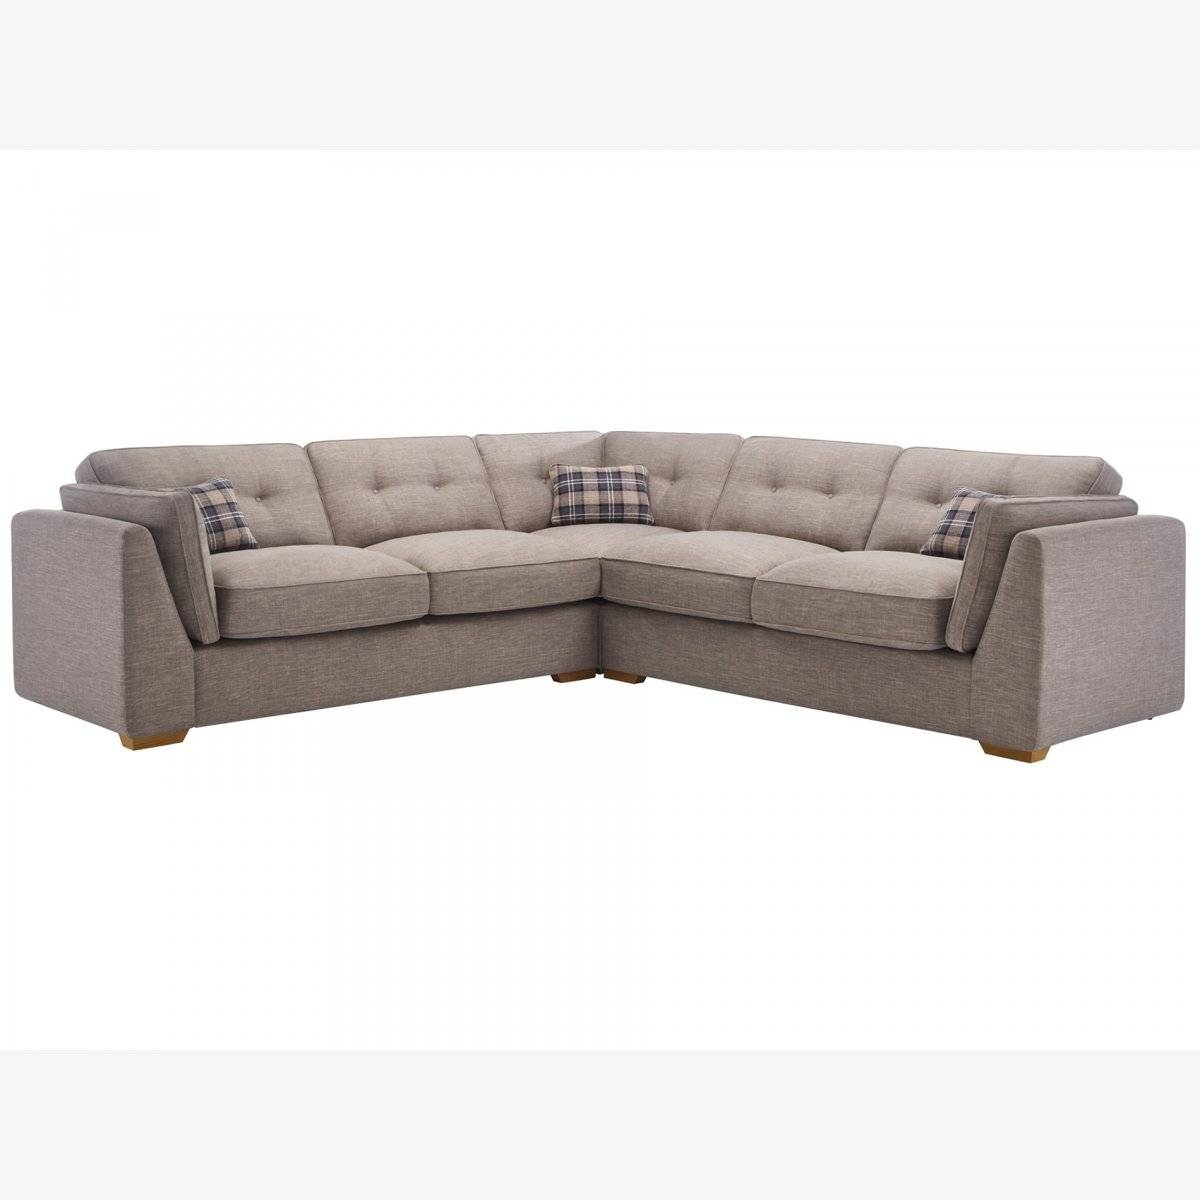 California Large Corner Sofa | High Back | Oak Furniture Land throughout 4 Seater Couch (Image 7 of 30)